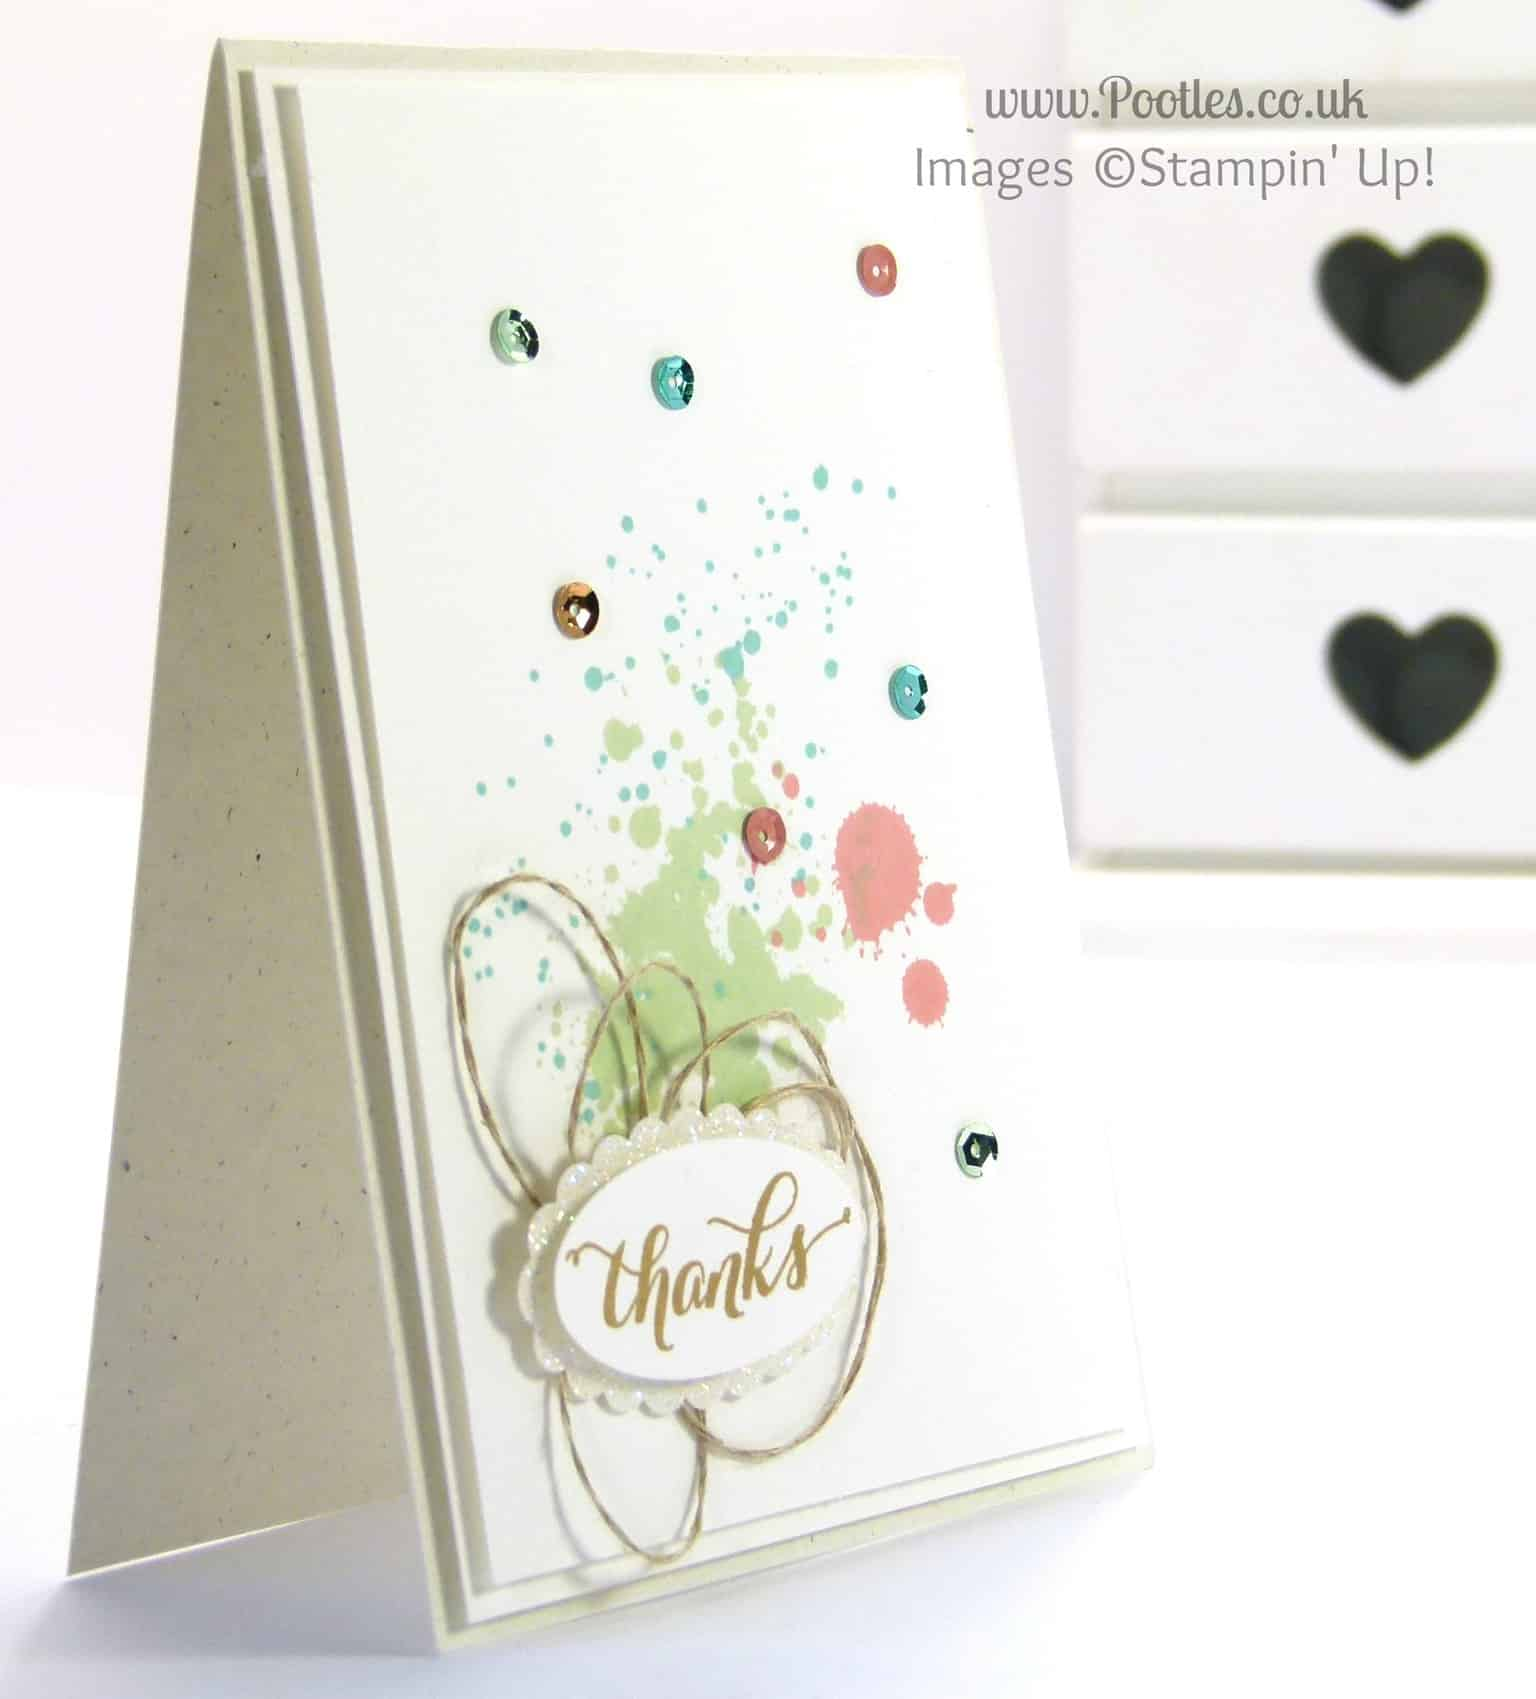 Stampin' Up! UK Demonstrator Pootles - Simple Sprinkles of Thanks!